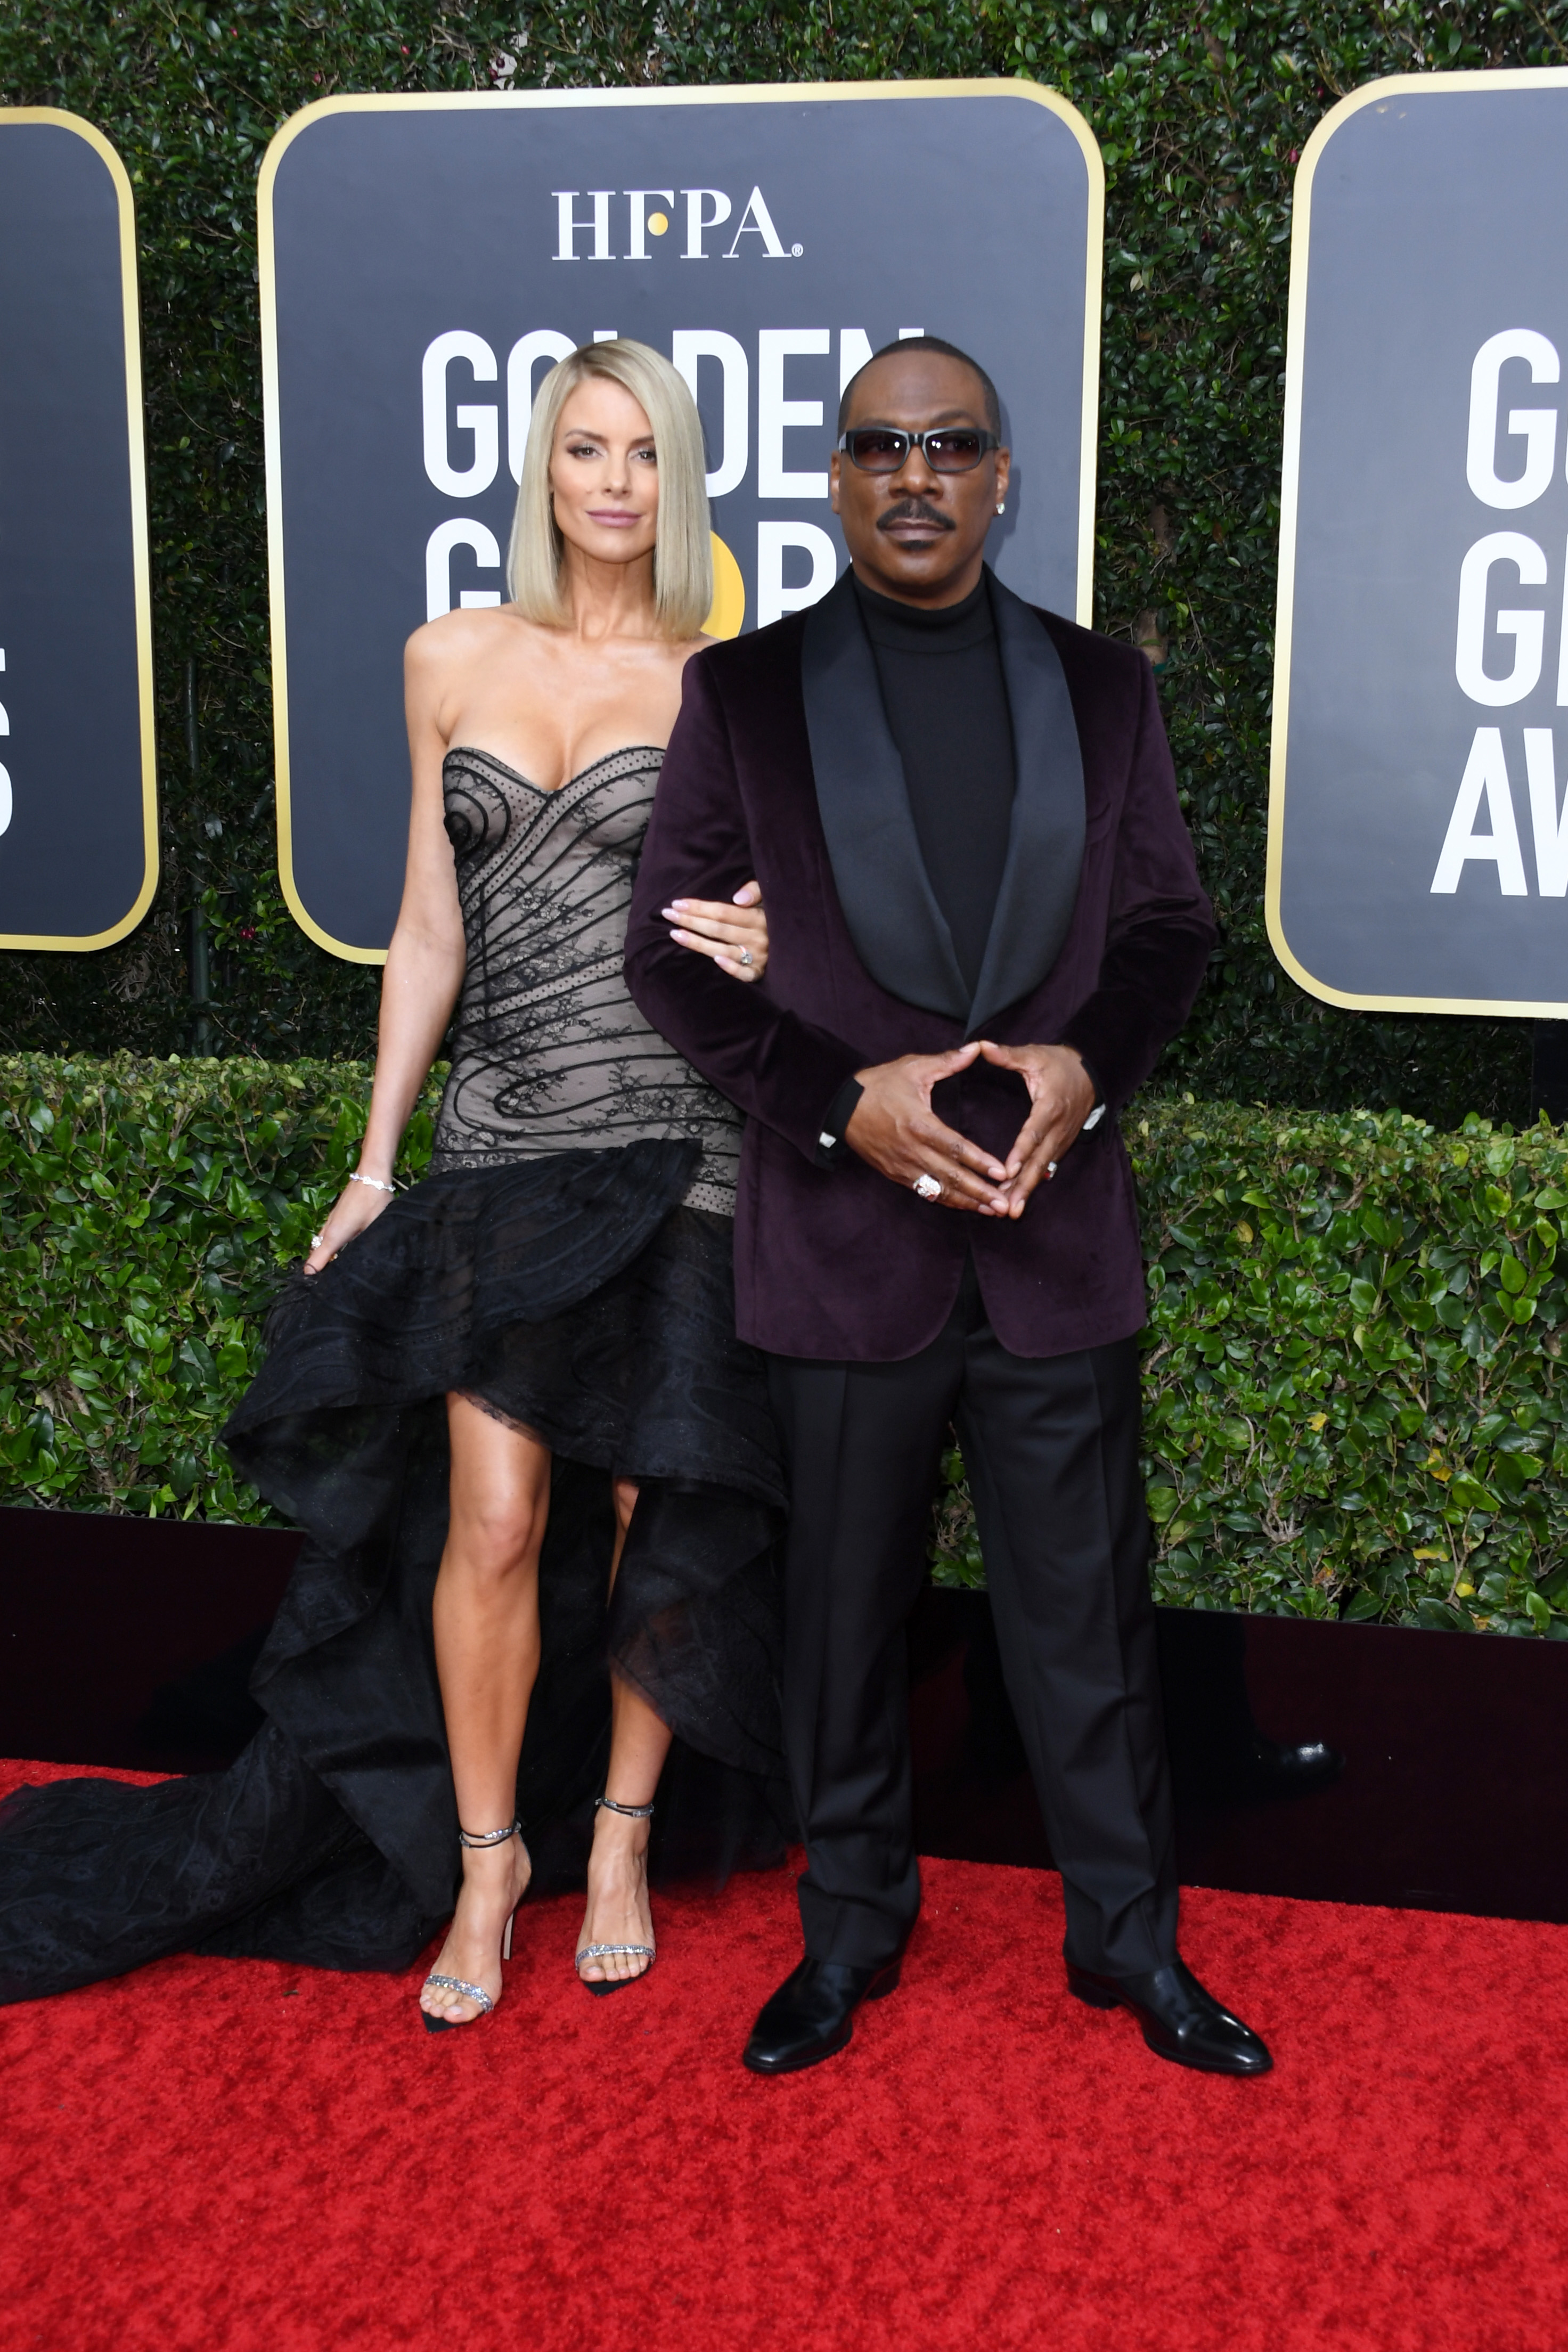 BEVERLY HILLS, CALIFORNIA - JANUARY 05: Paige Butcher (L) and Eddie Murphy attend the 77th Annual Golden Globe Awards at The Beverly Hilton Hotel on January 05, 2020 in Beverly Hills, California. (Photo by Jon Kopaloff/Getty Images)